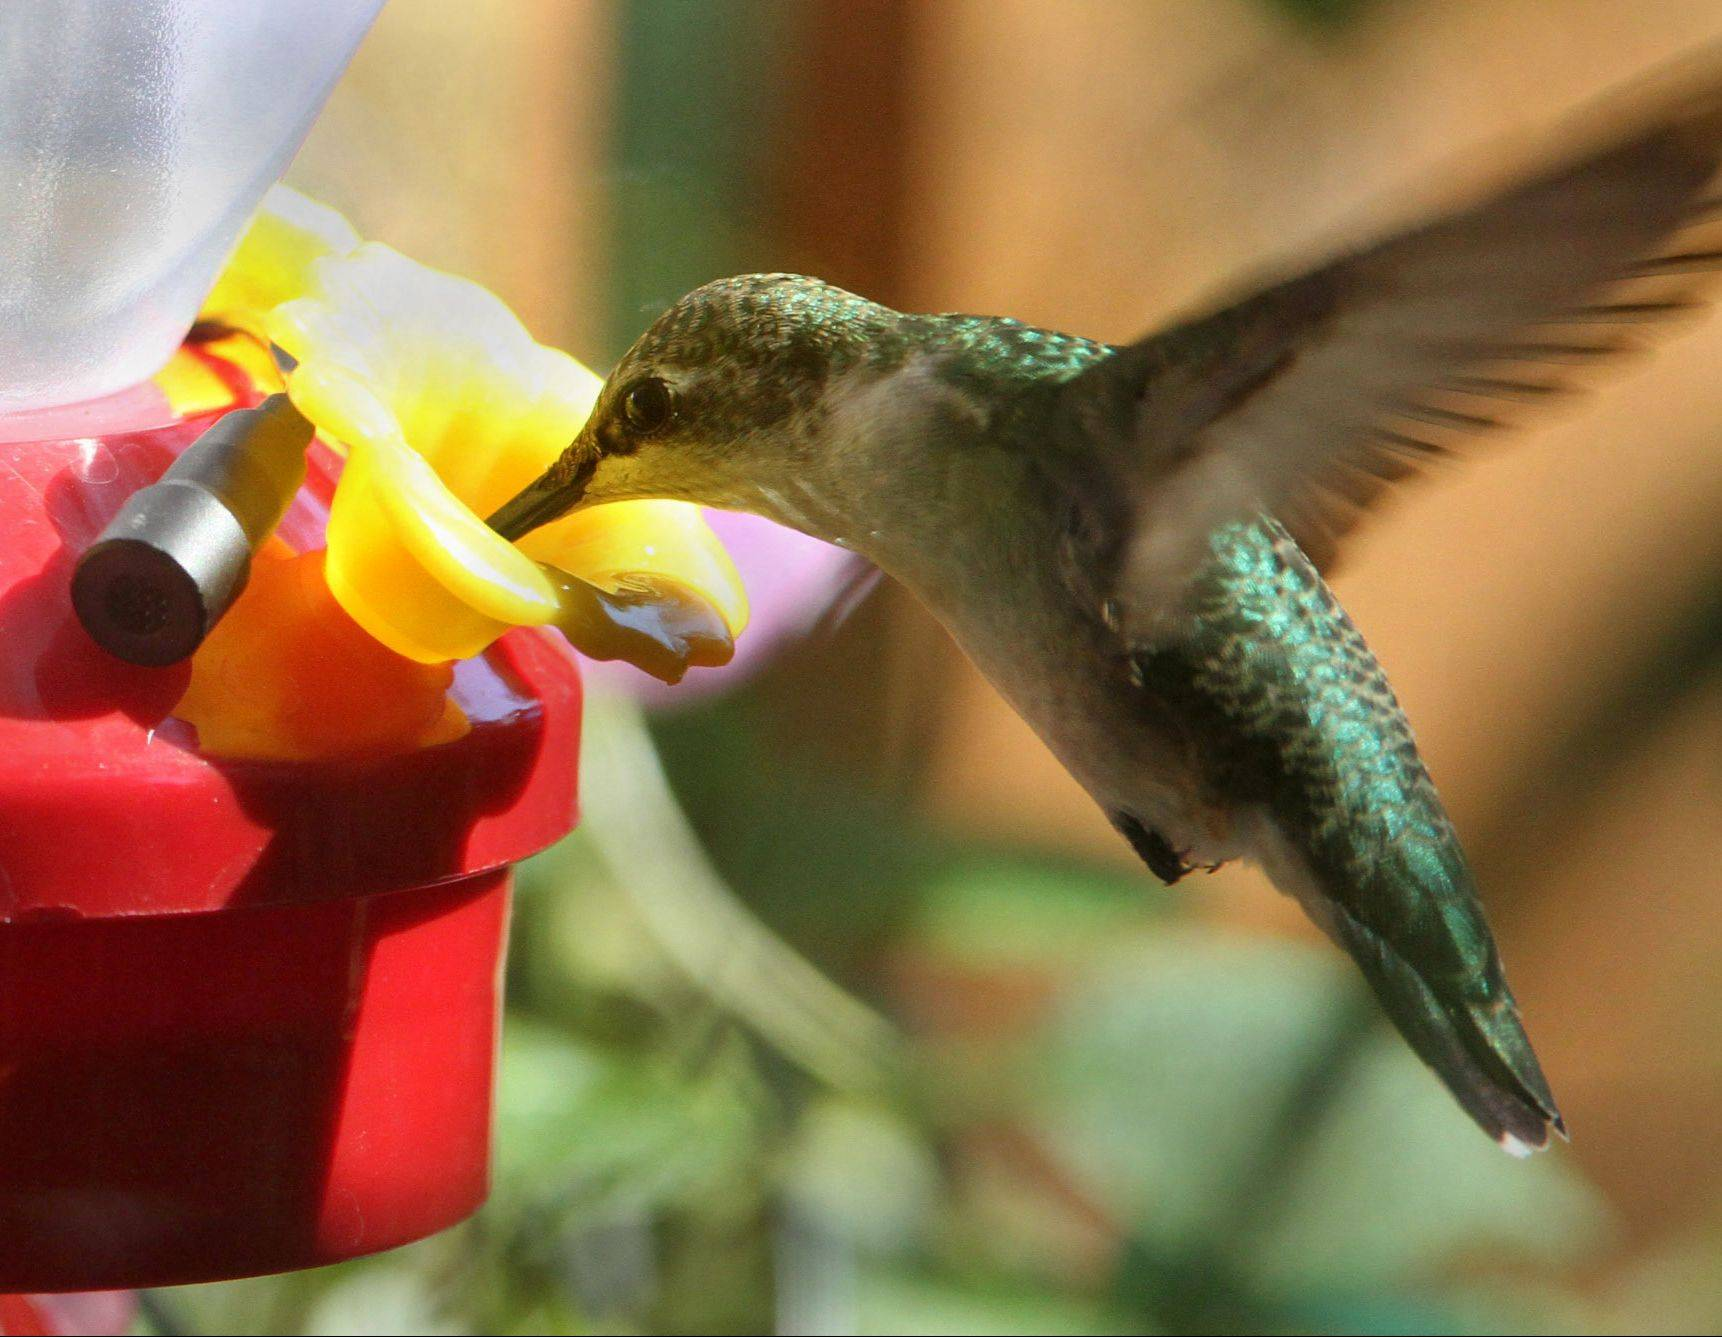 A ruby-throated hummingbird feeds from a non-perch feeder, beating its wings 60 times per second to stay in place.